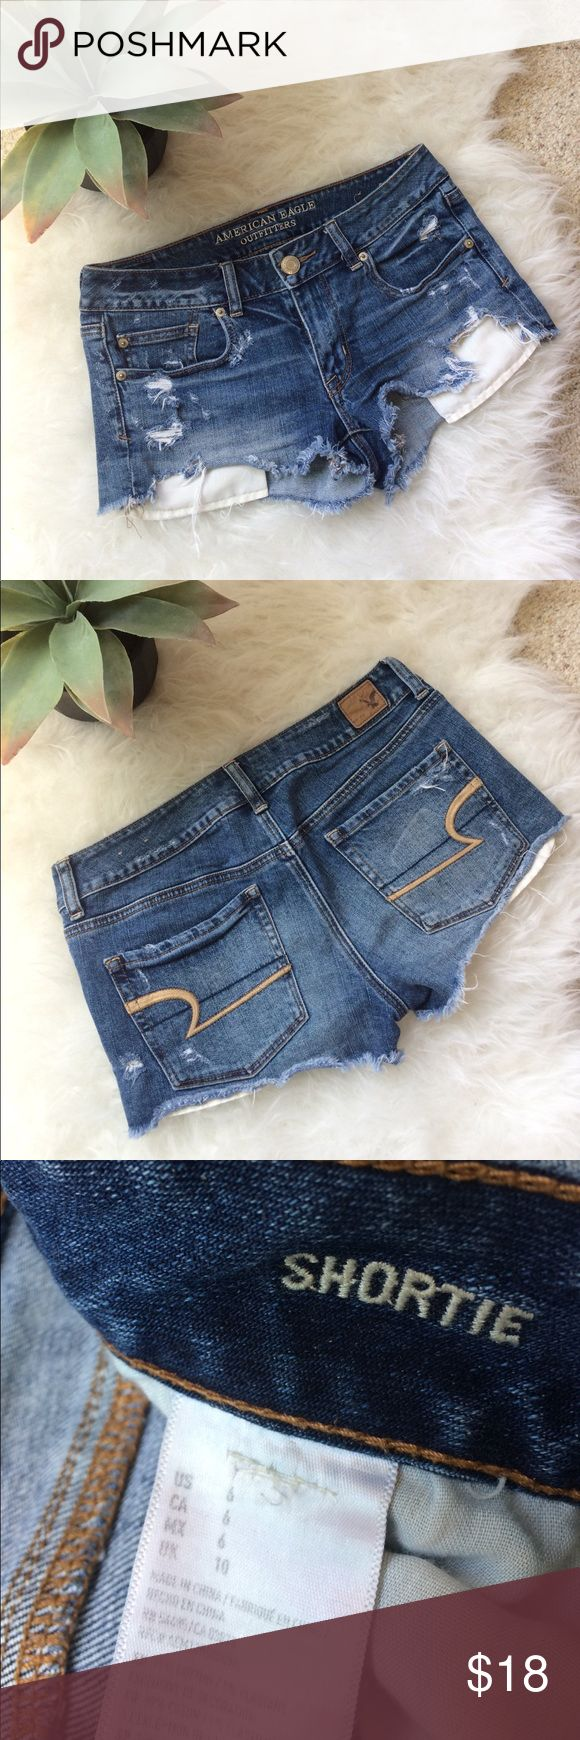 💥Price Drop!💥 American Eagle Jean Shorts Mid-low rise jean shorts. Used but in great condition! Size 6, but runs a little small. American Eagle Outfitters Jeans